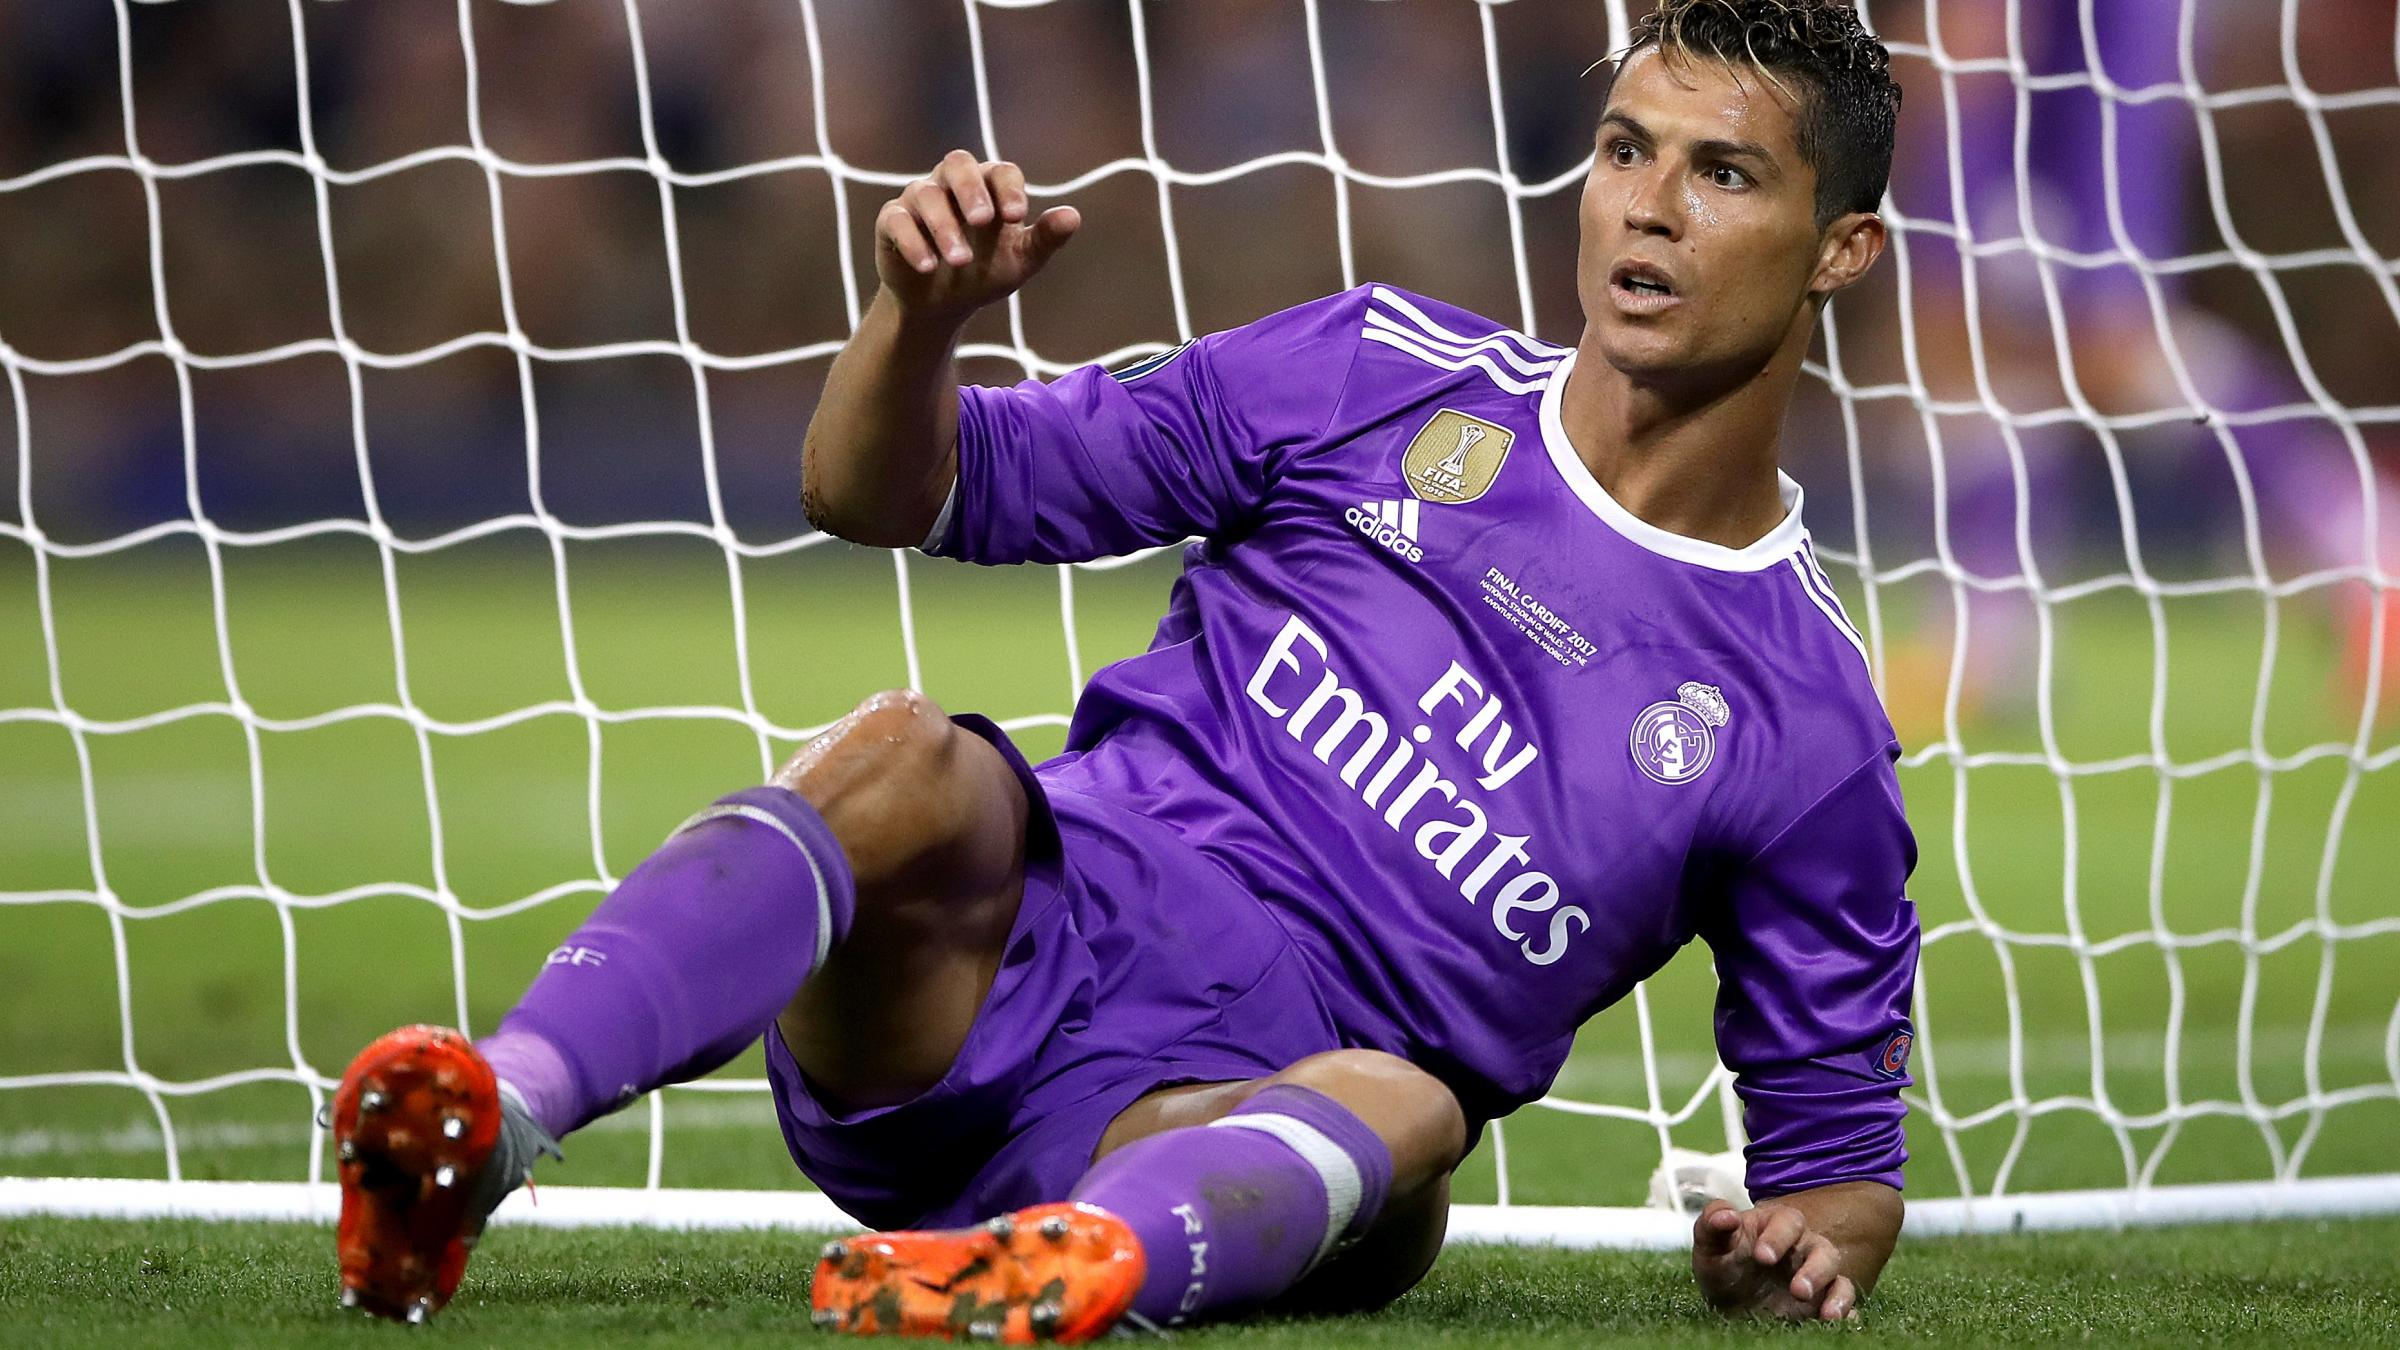 Cristiano Ronaldo faces tax probe over image rights